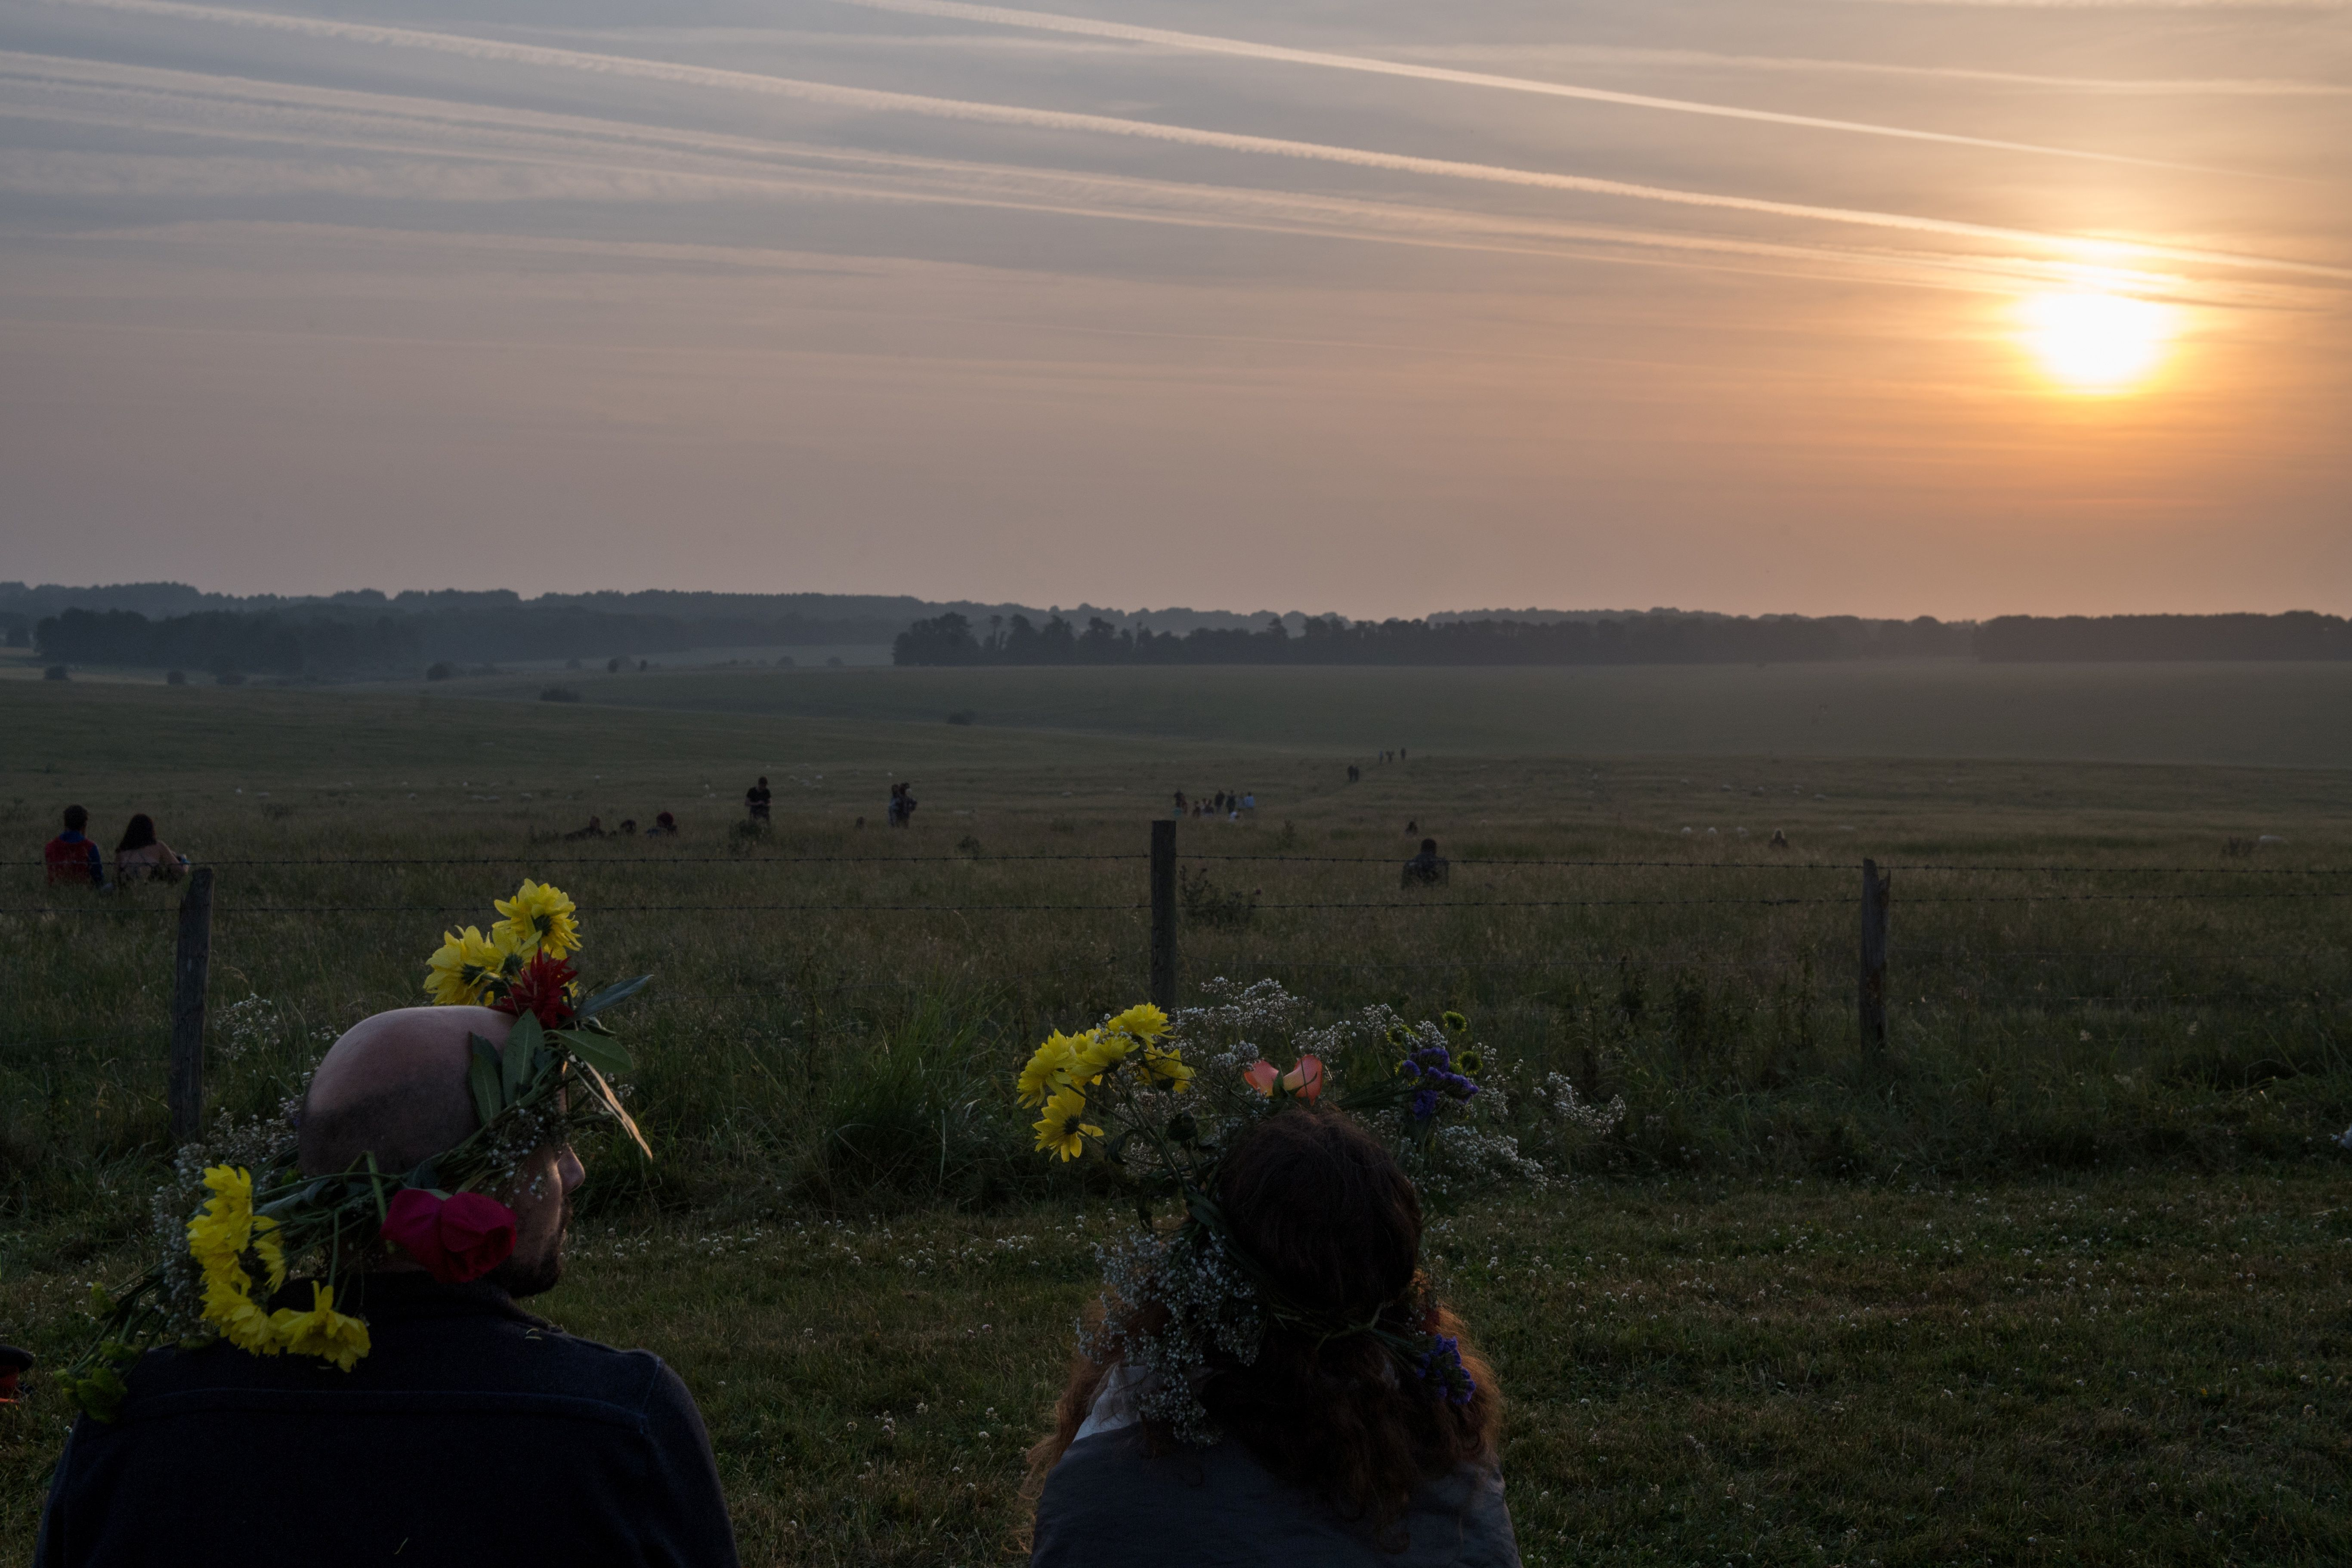 People with flowers in their hair watching sunrise